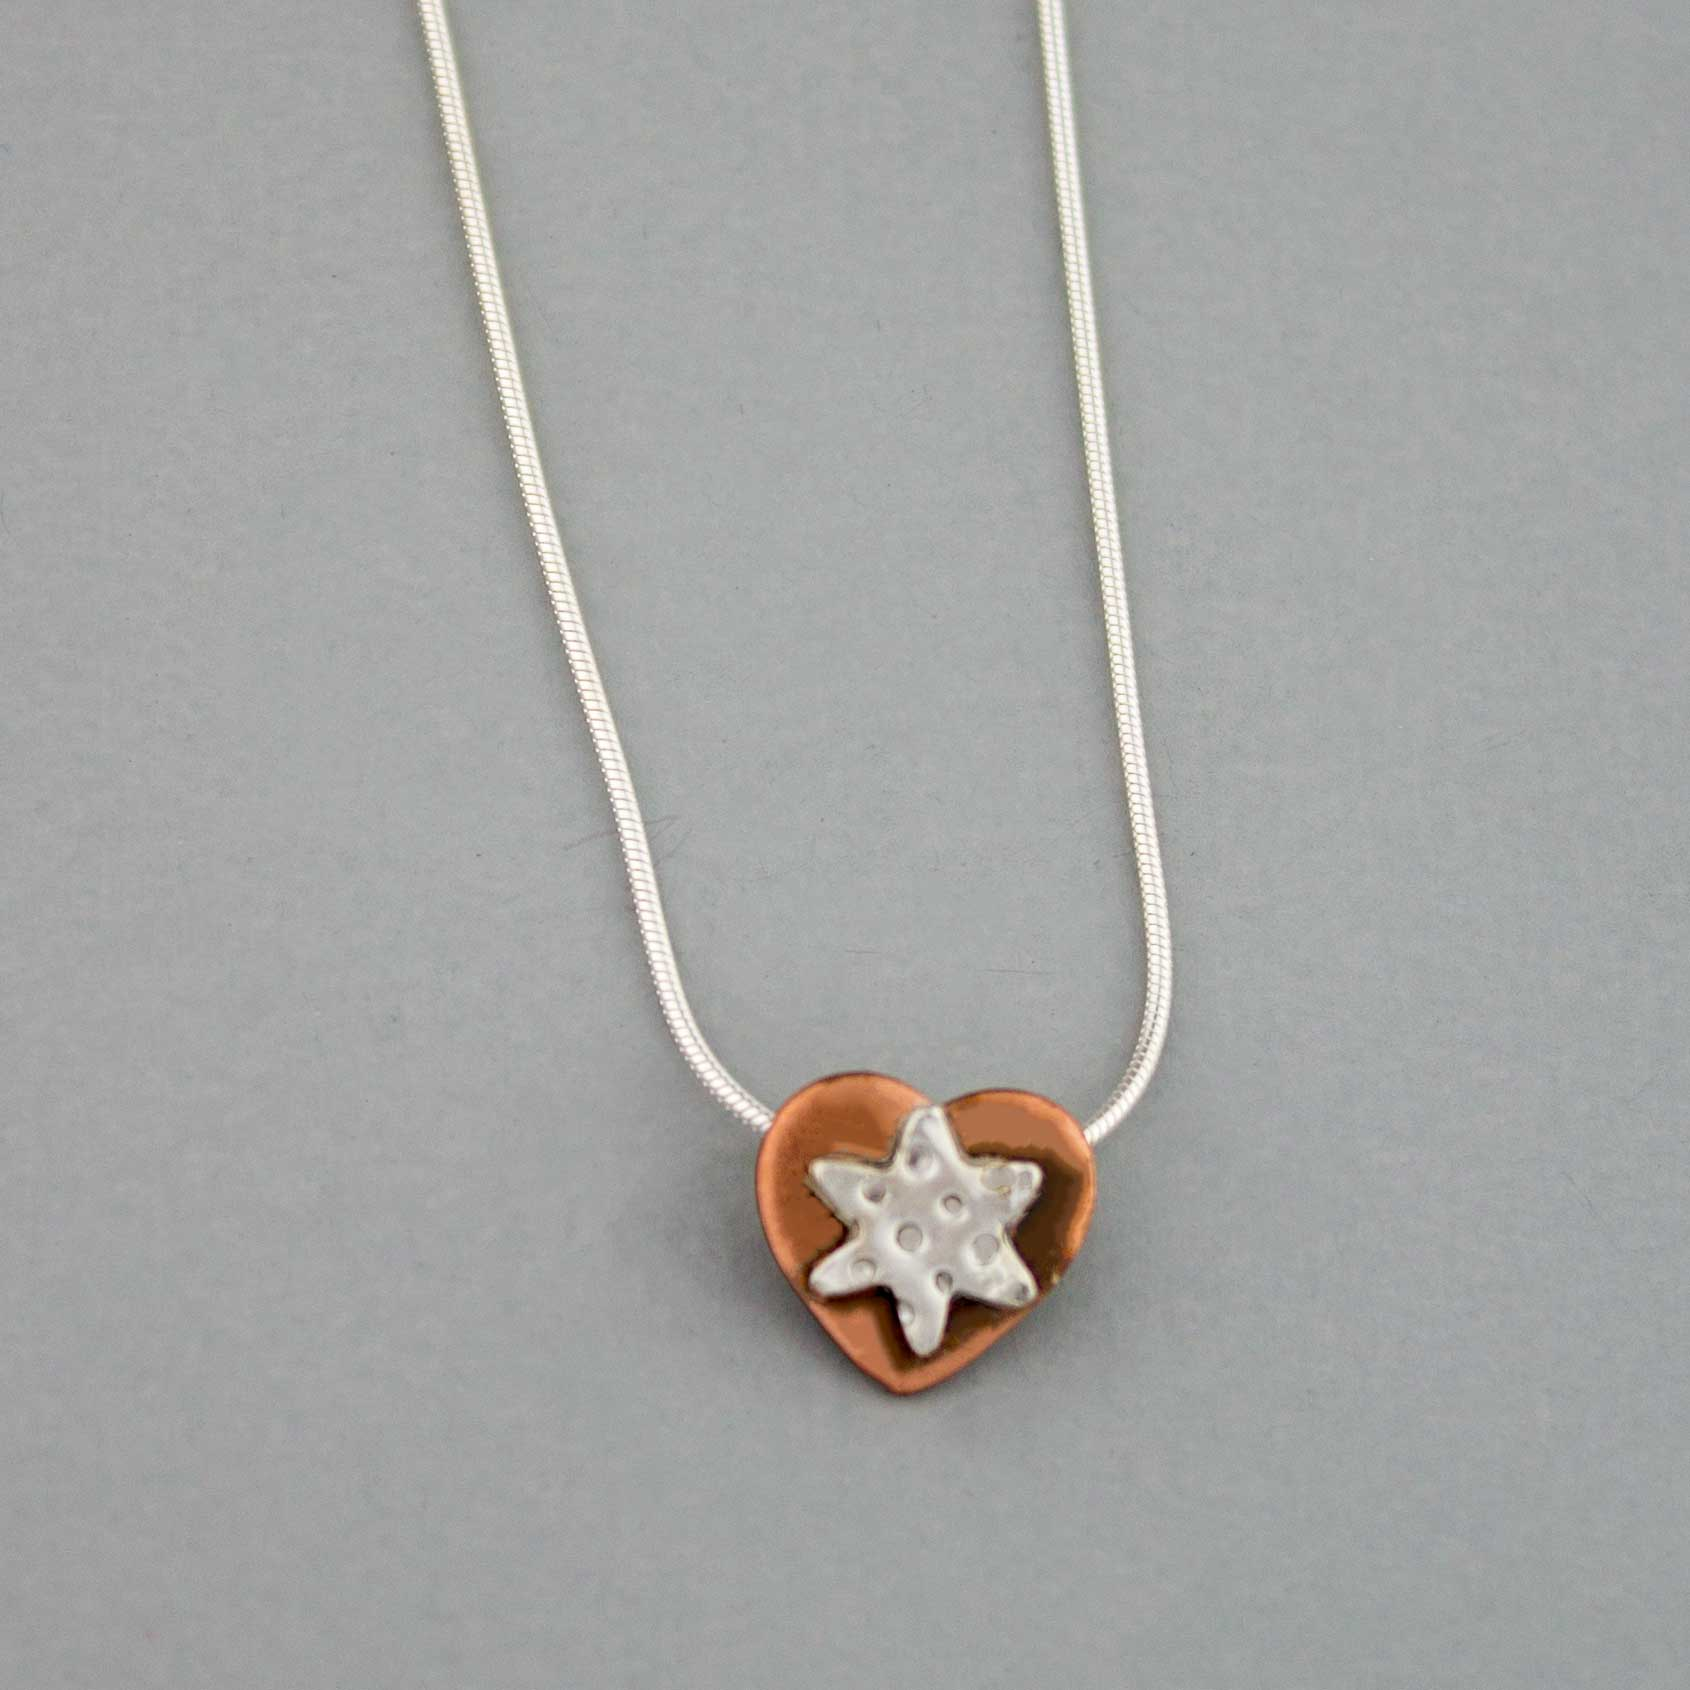 Heartburst - Necklace